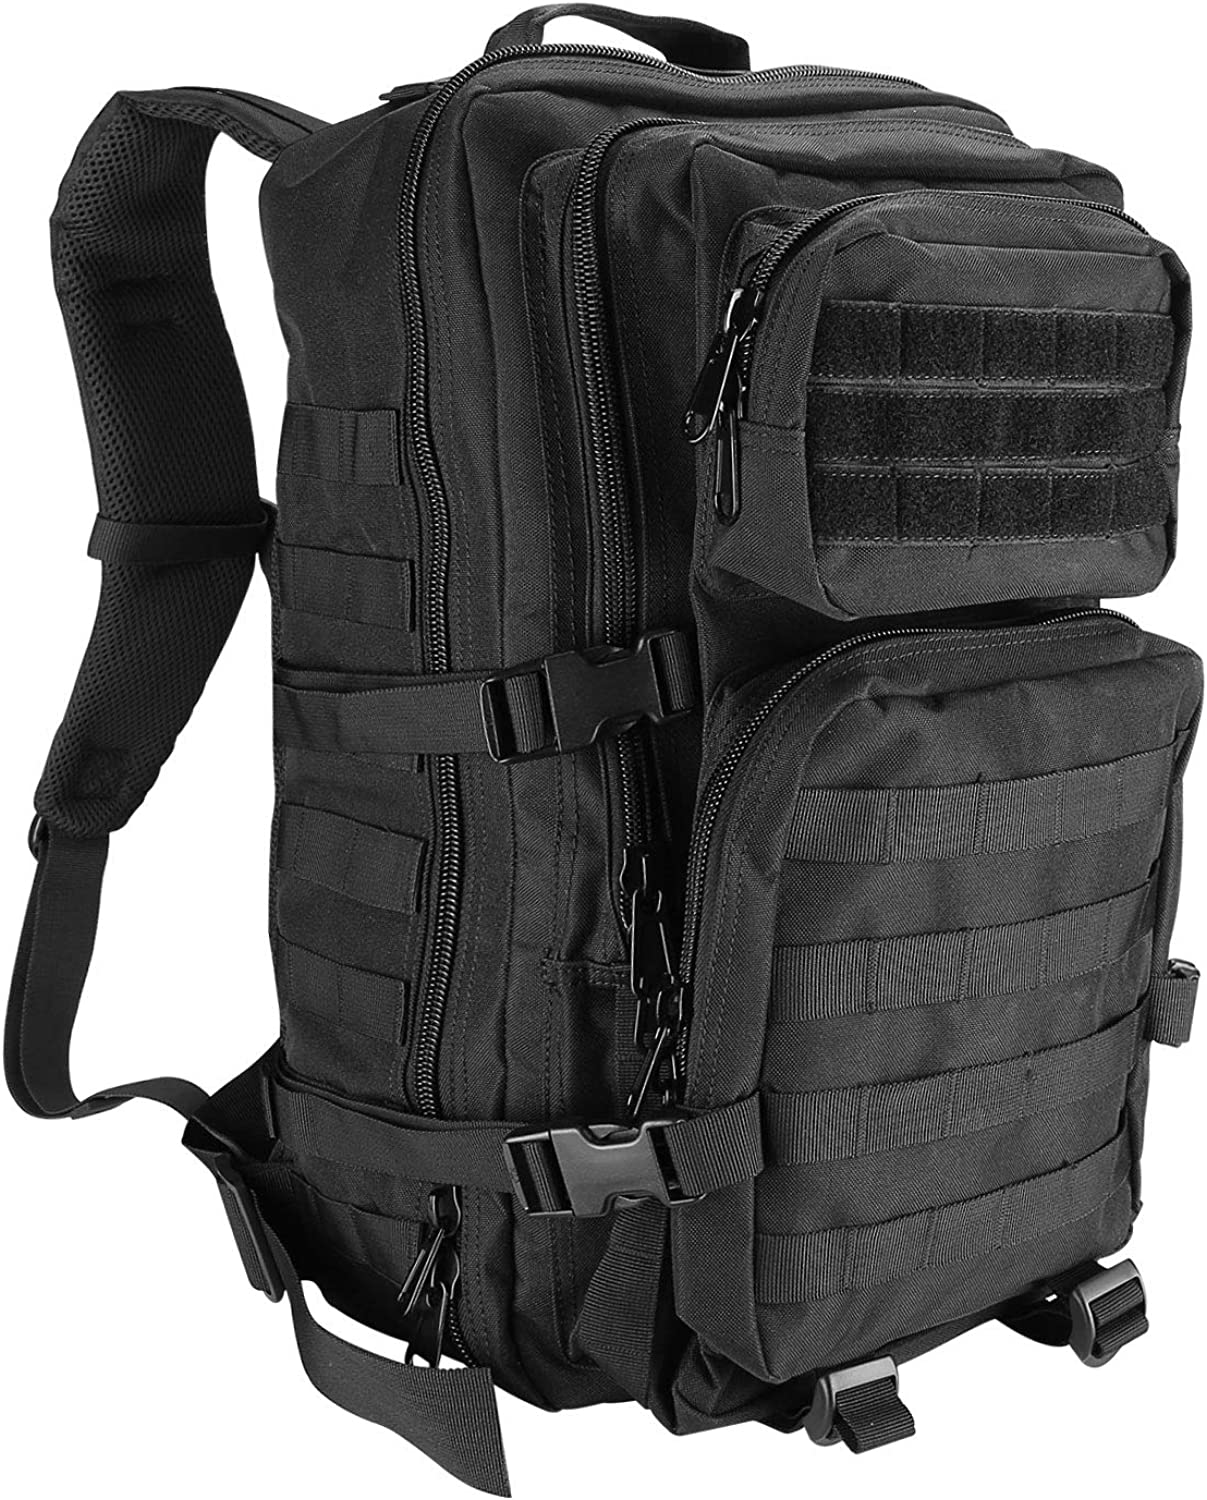 ProCase Tactical All items free shipping Backpack Bag 40L Large New Free Shipping Outd Army Military 3 Day